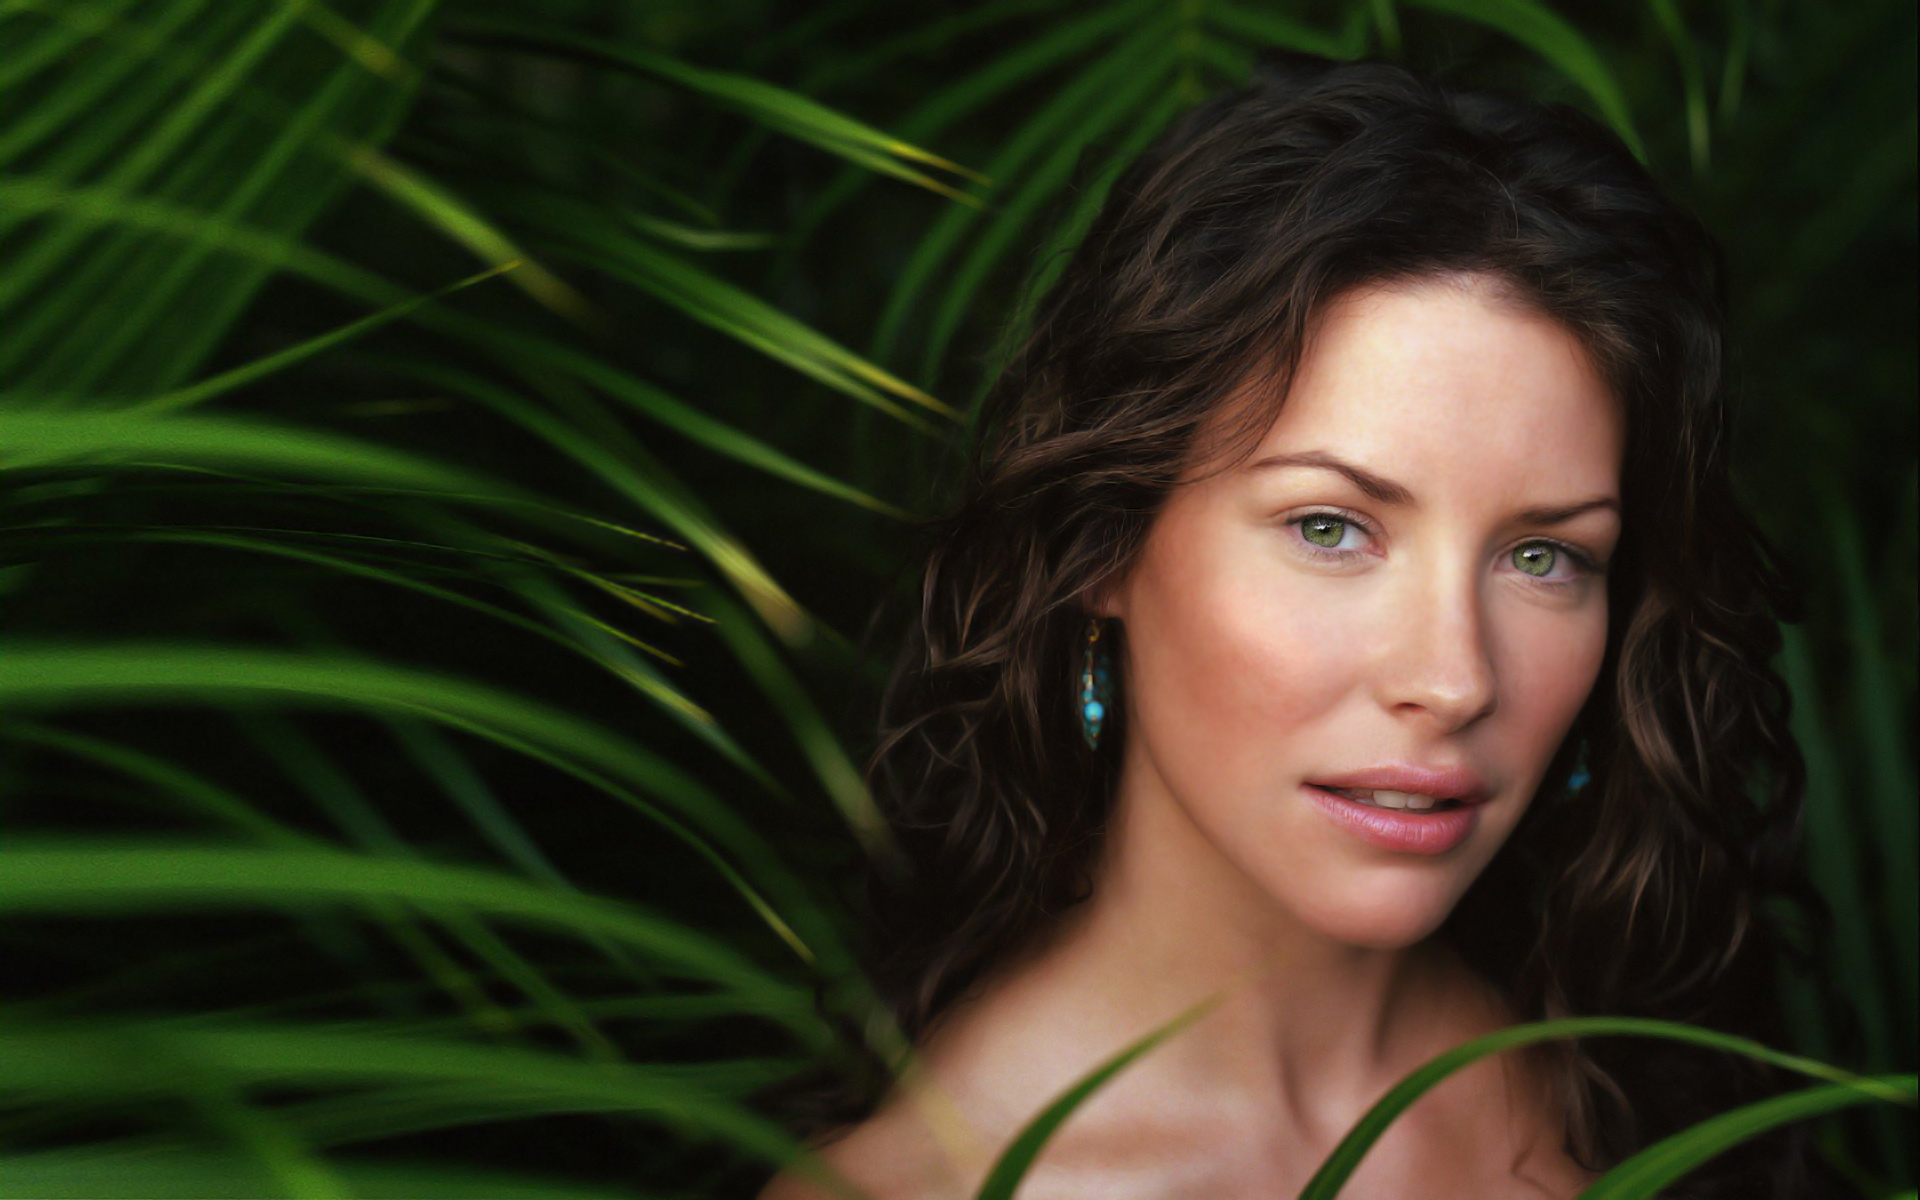 evangeline lilly wallpapers actress 1920x1200 1920x1200